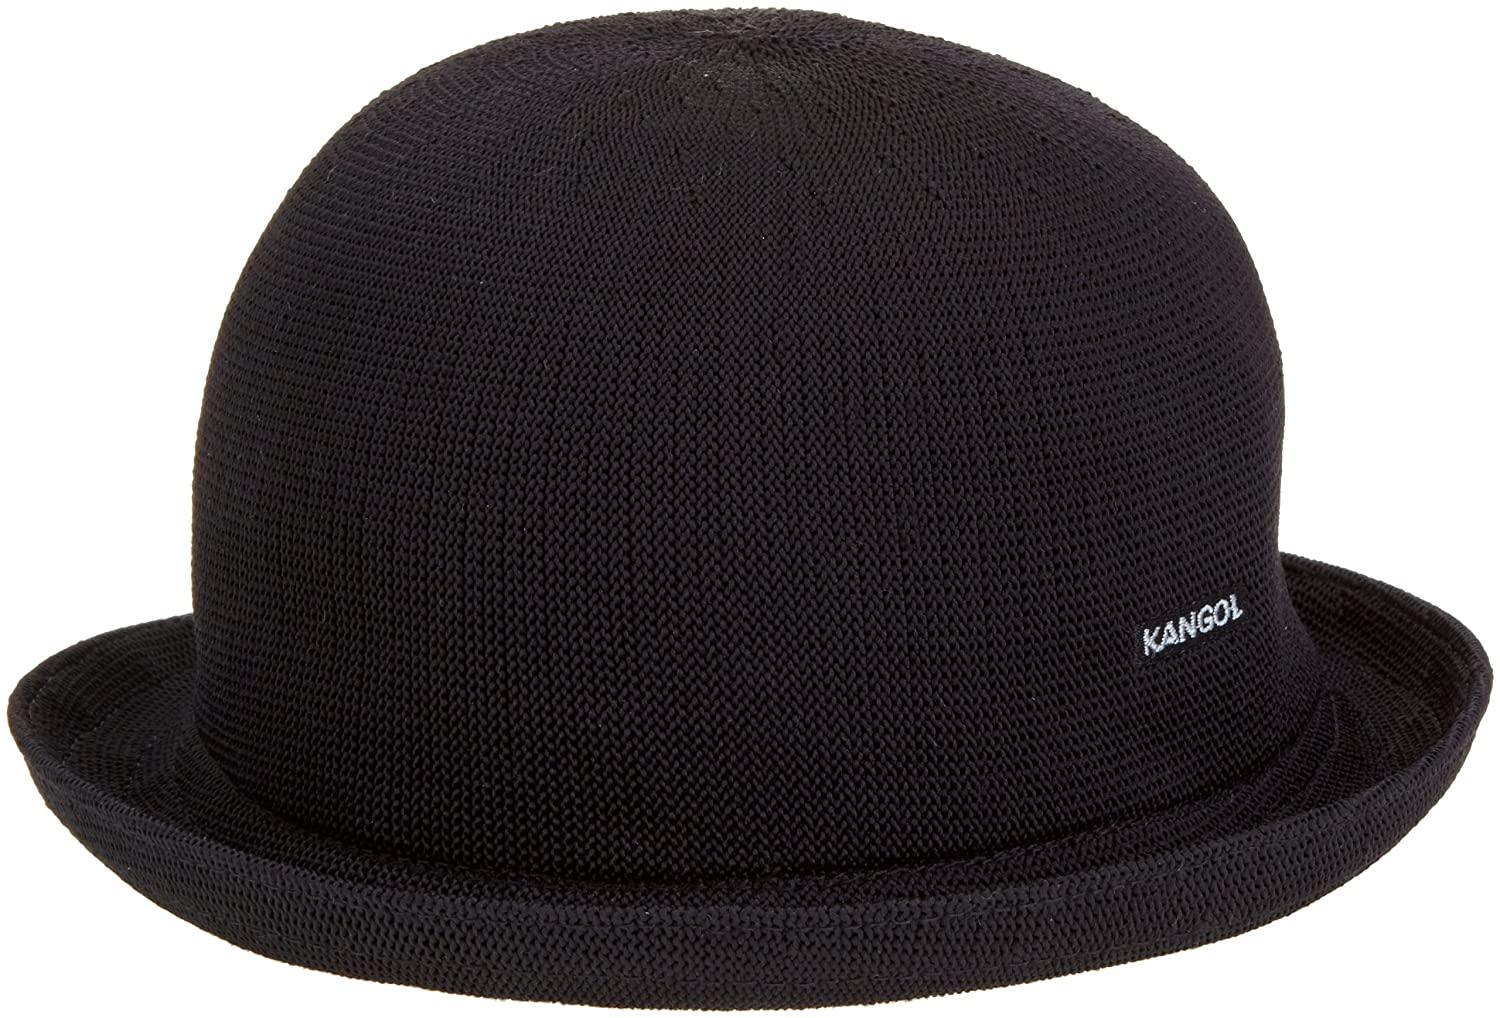 Kangol Men s Tropic Bombin at Amazon Men s Clothing store  e7b785f3ff0d